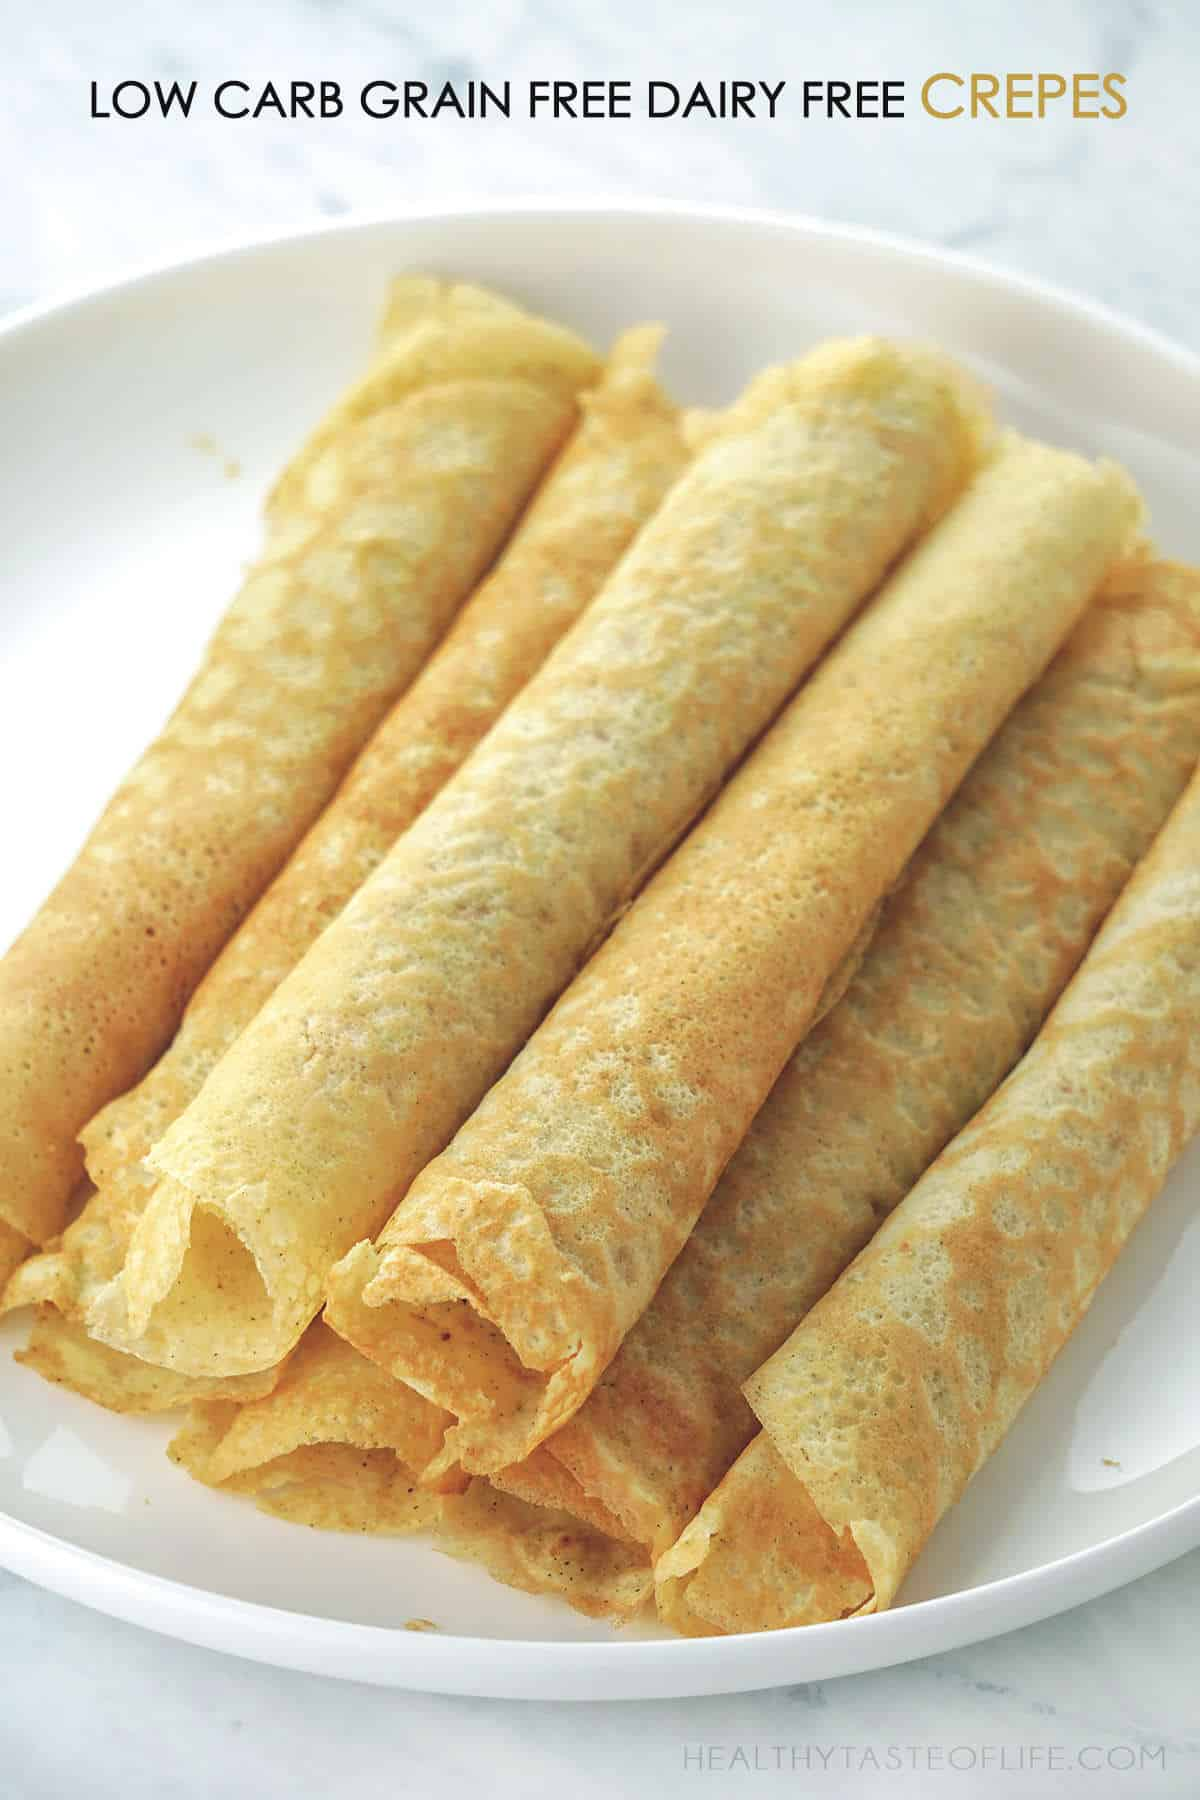 Keto Low carb grain free crepes with almond flour and banana flour, also dairy free gluten free and paleo friendly.